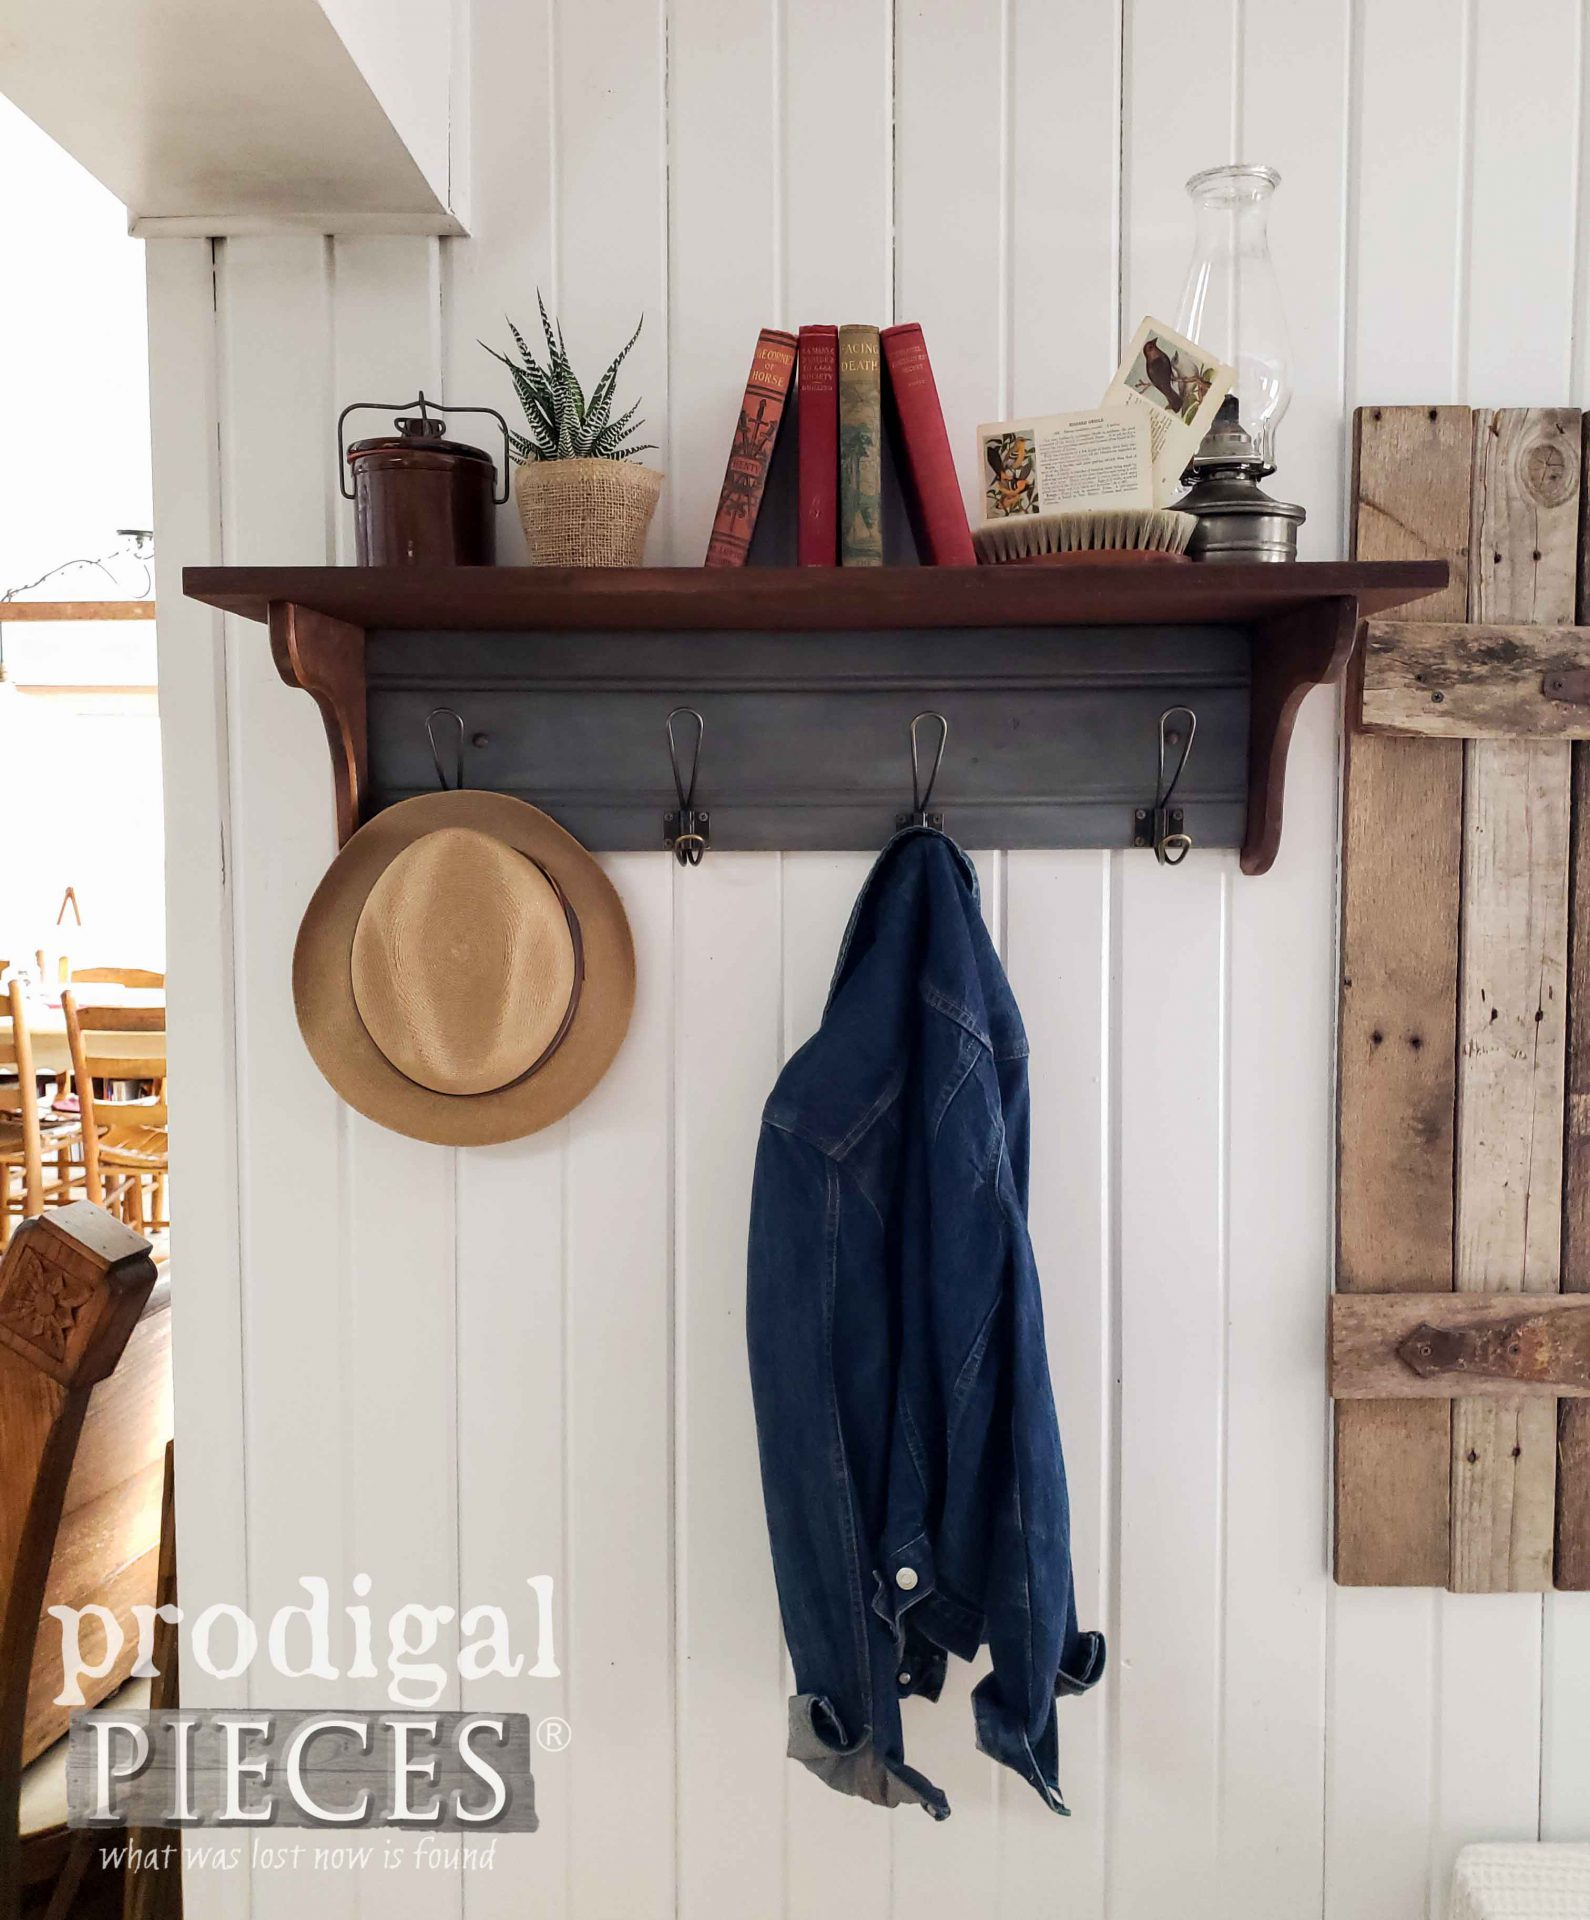 Farmhouse Style Home Decor with Reclaimed Coat Rack by Larissa of Prodigal Pieces | Video Tutorial at prodigalpieces.com #prodigalpieces #farmhouse #home #diy #homedecor #tutorial